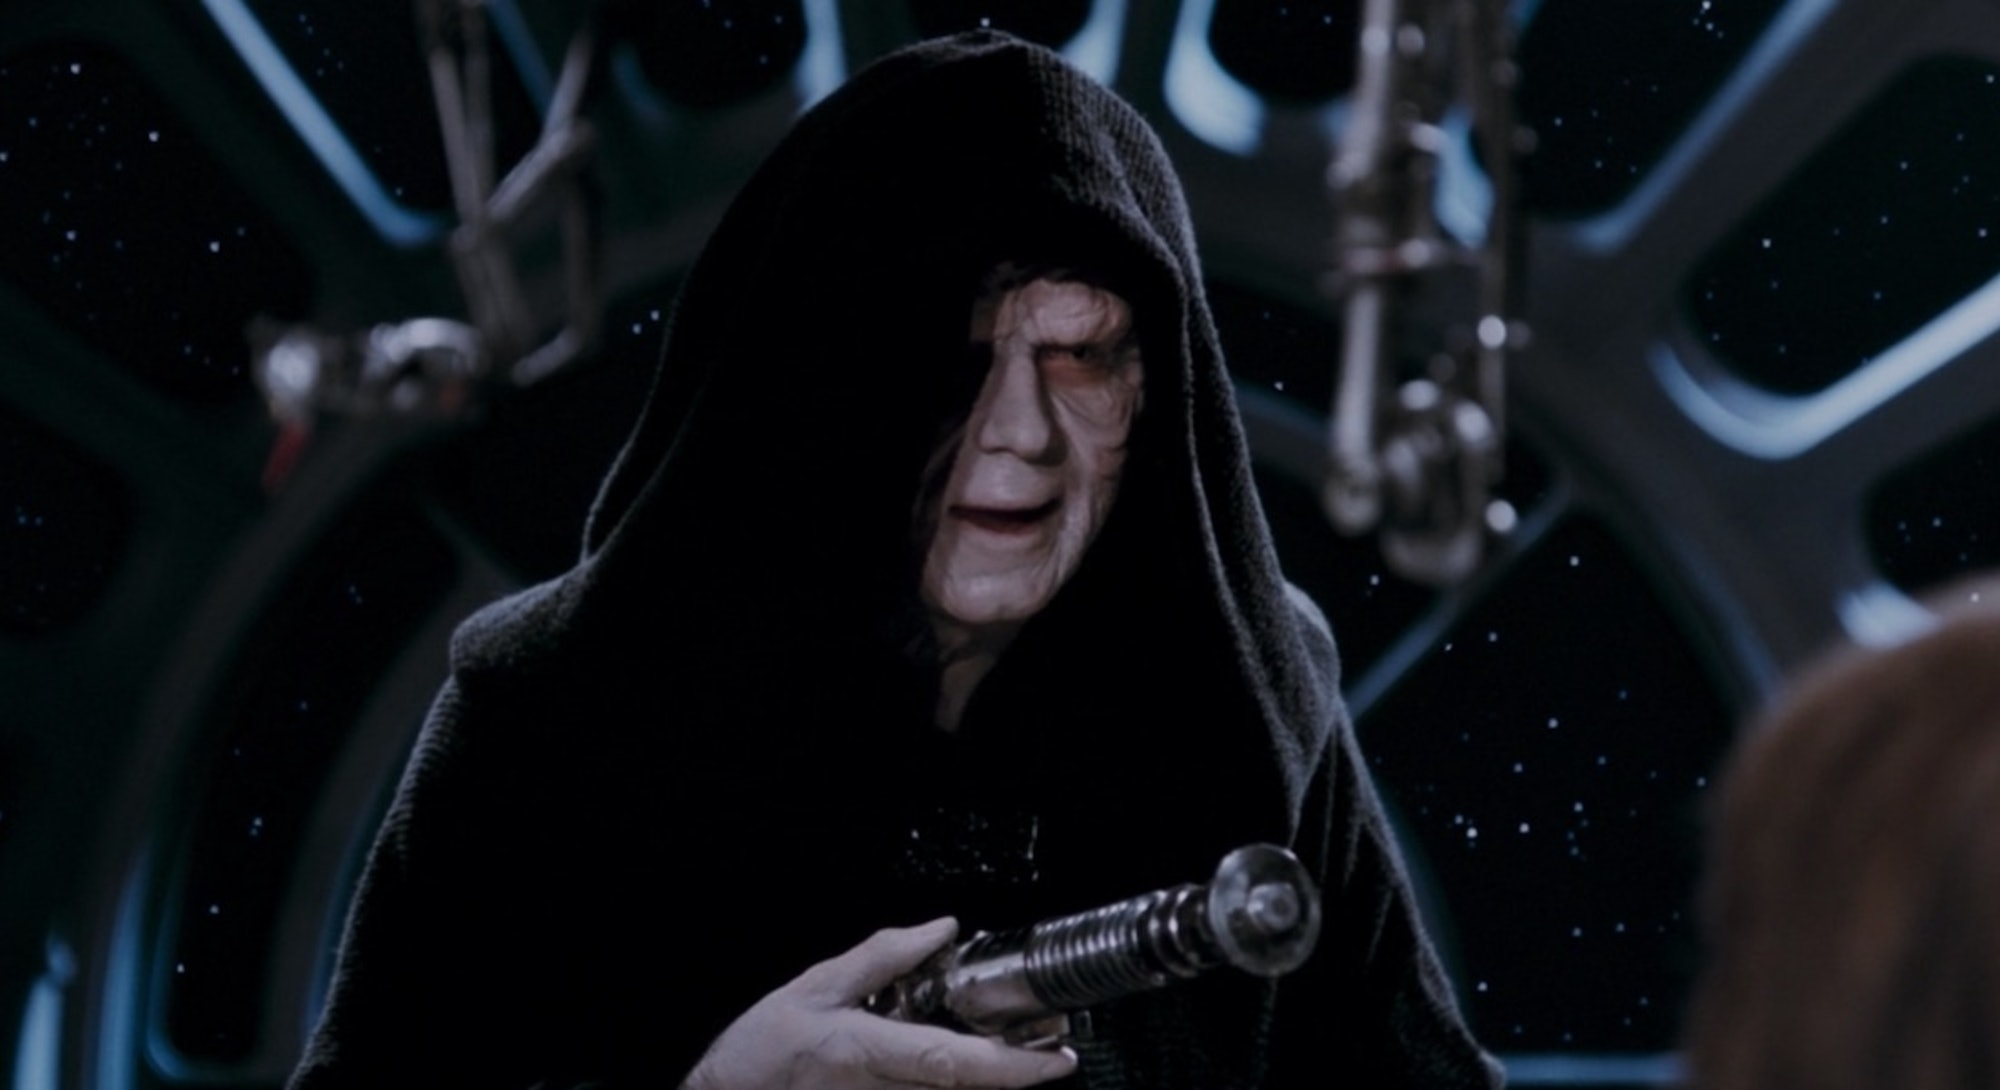 Star Wars 1 200 Fans Answer The Biggest Emperor Palpatine Mysteries